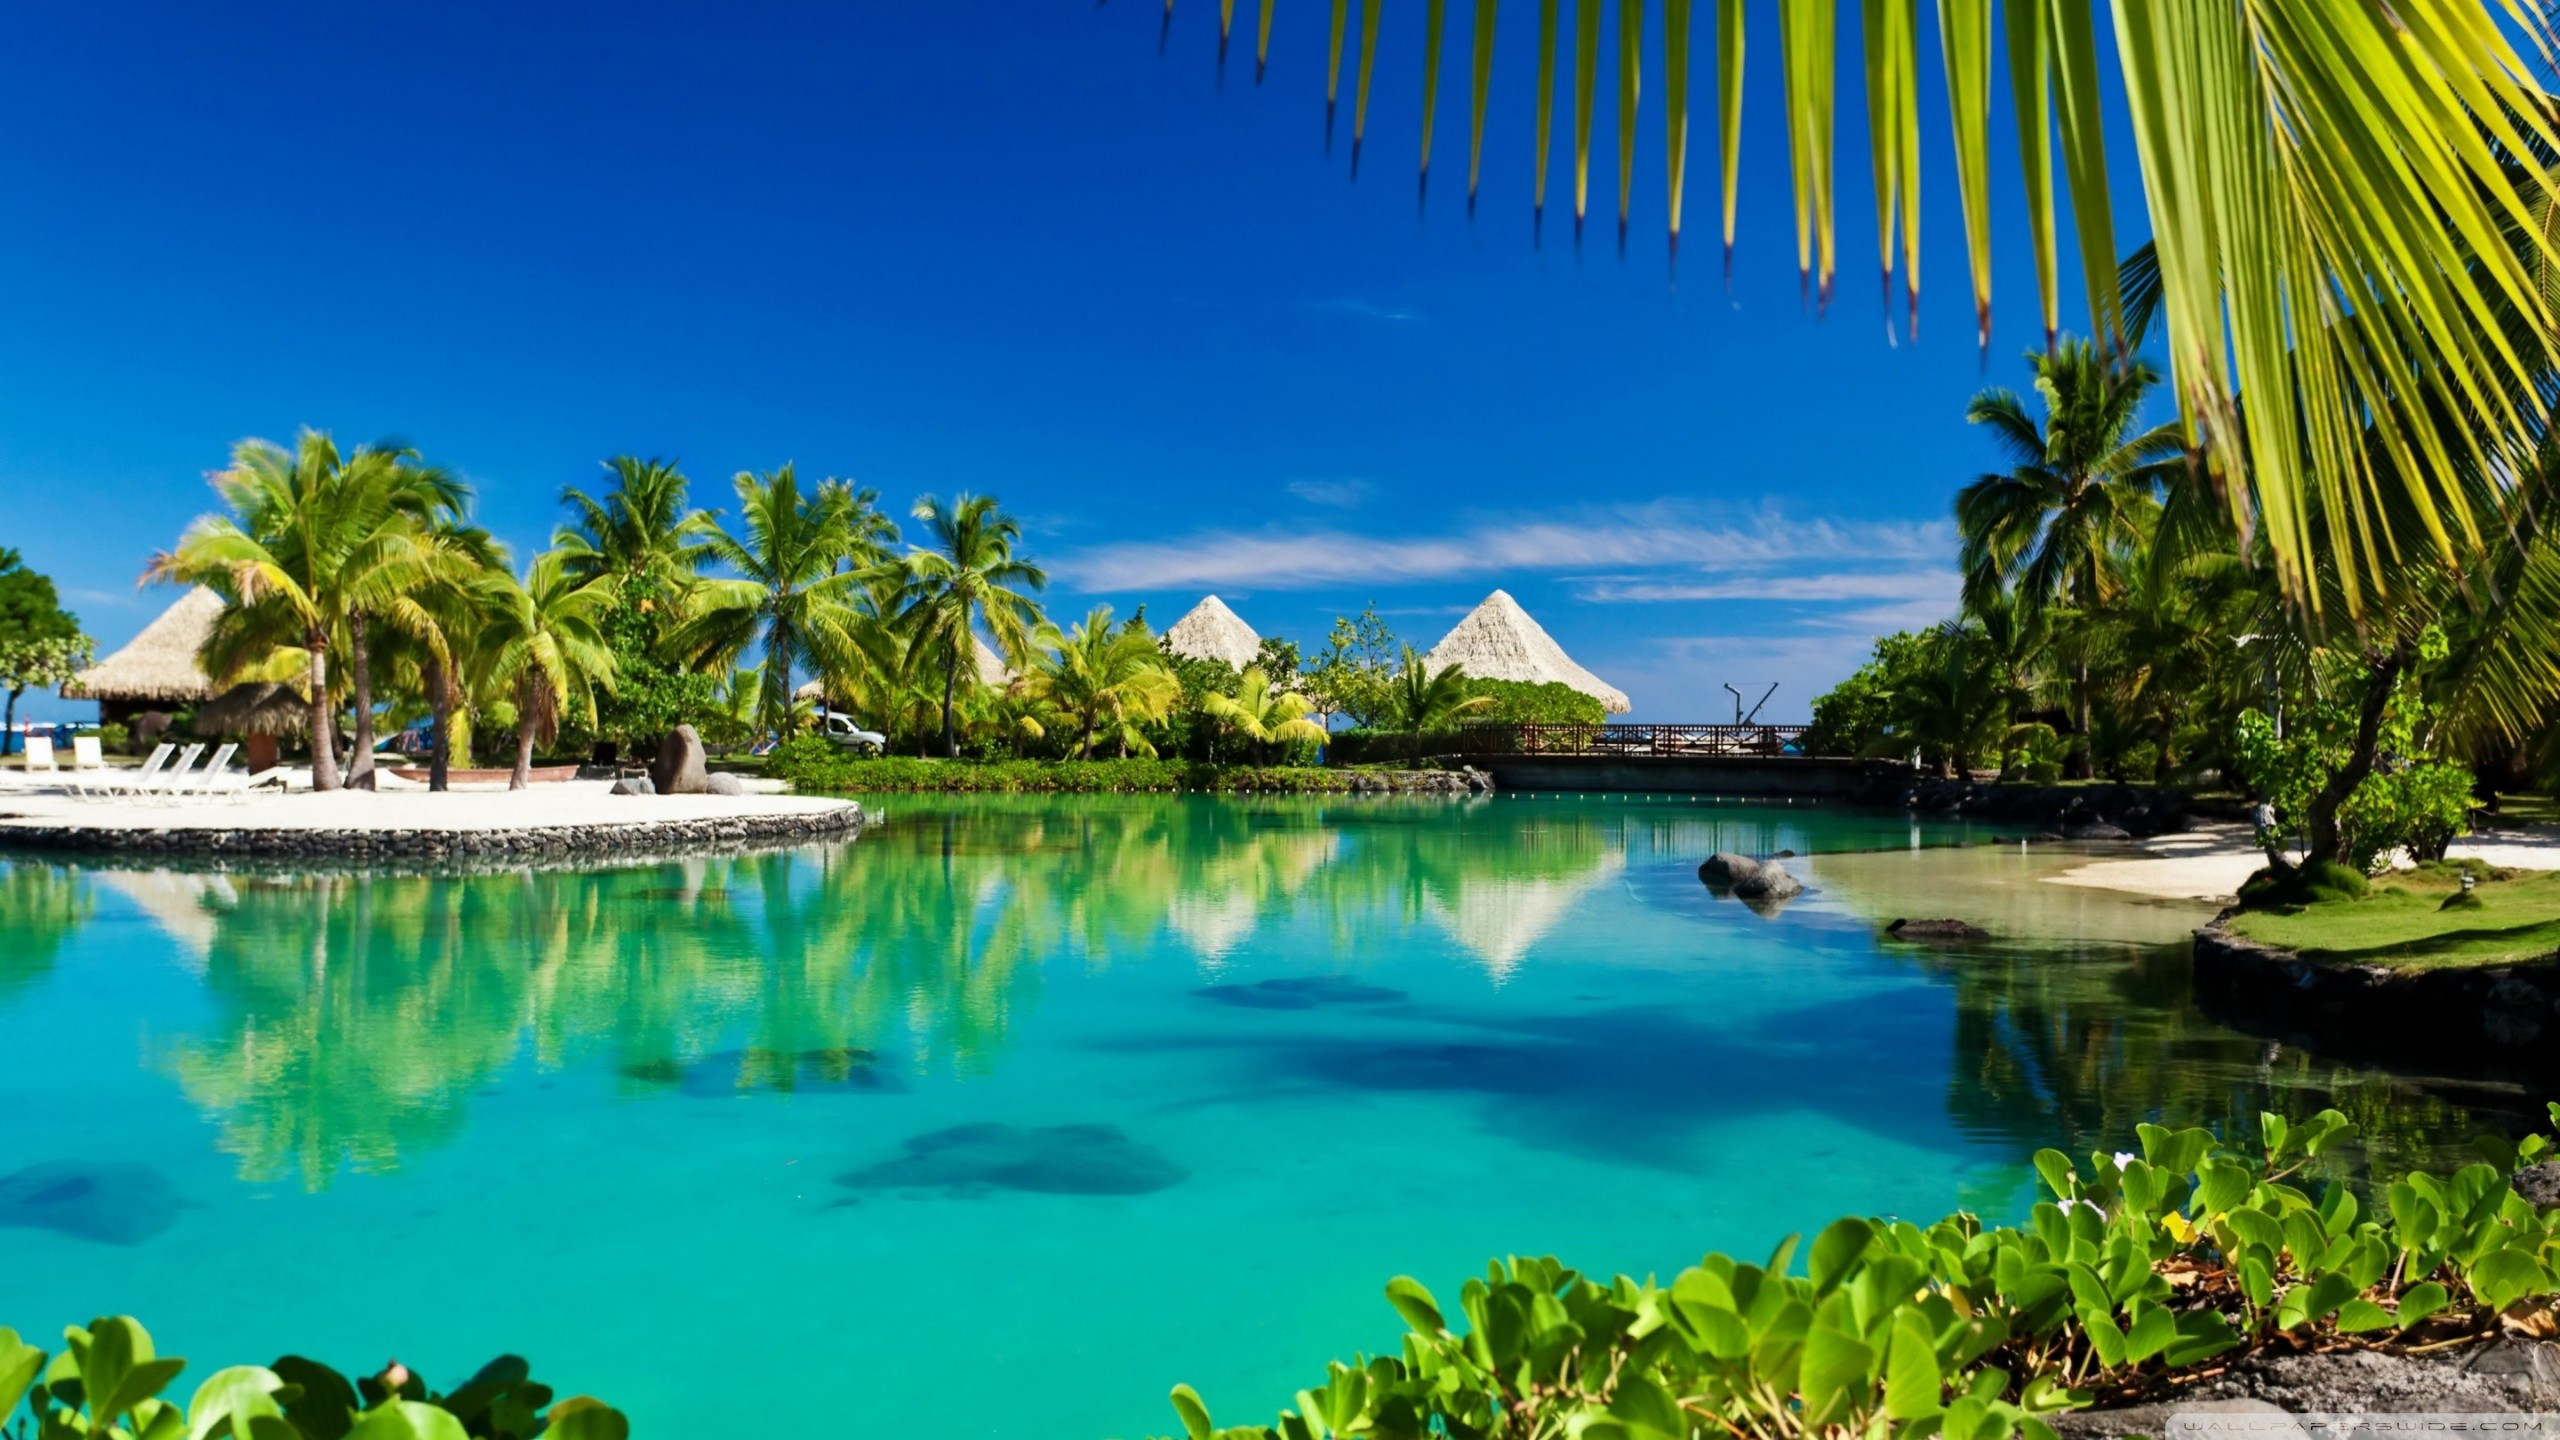 High definition tropical wallpapers 63 images - Wallpaper definition ...